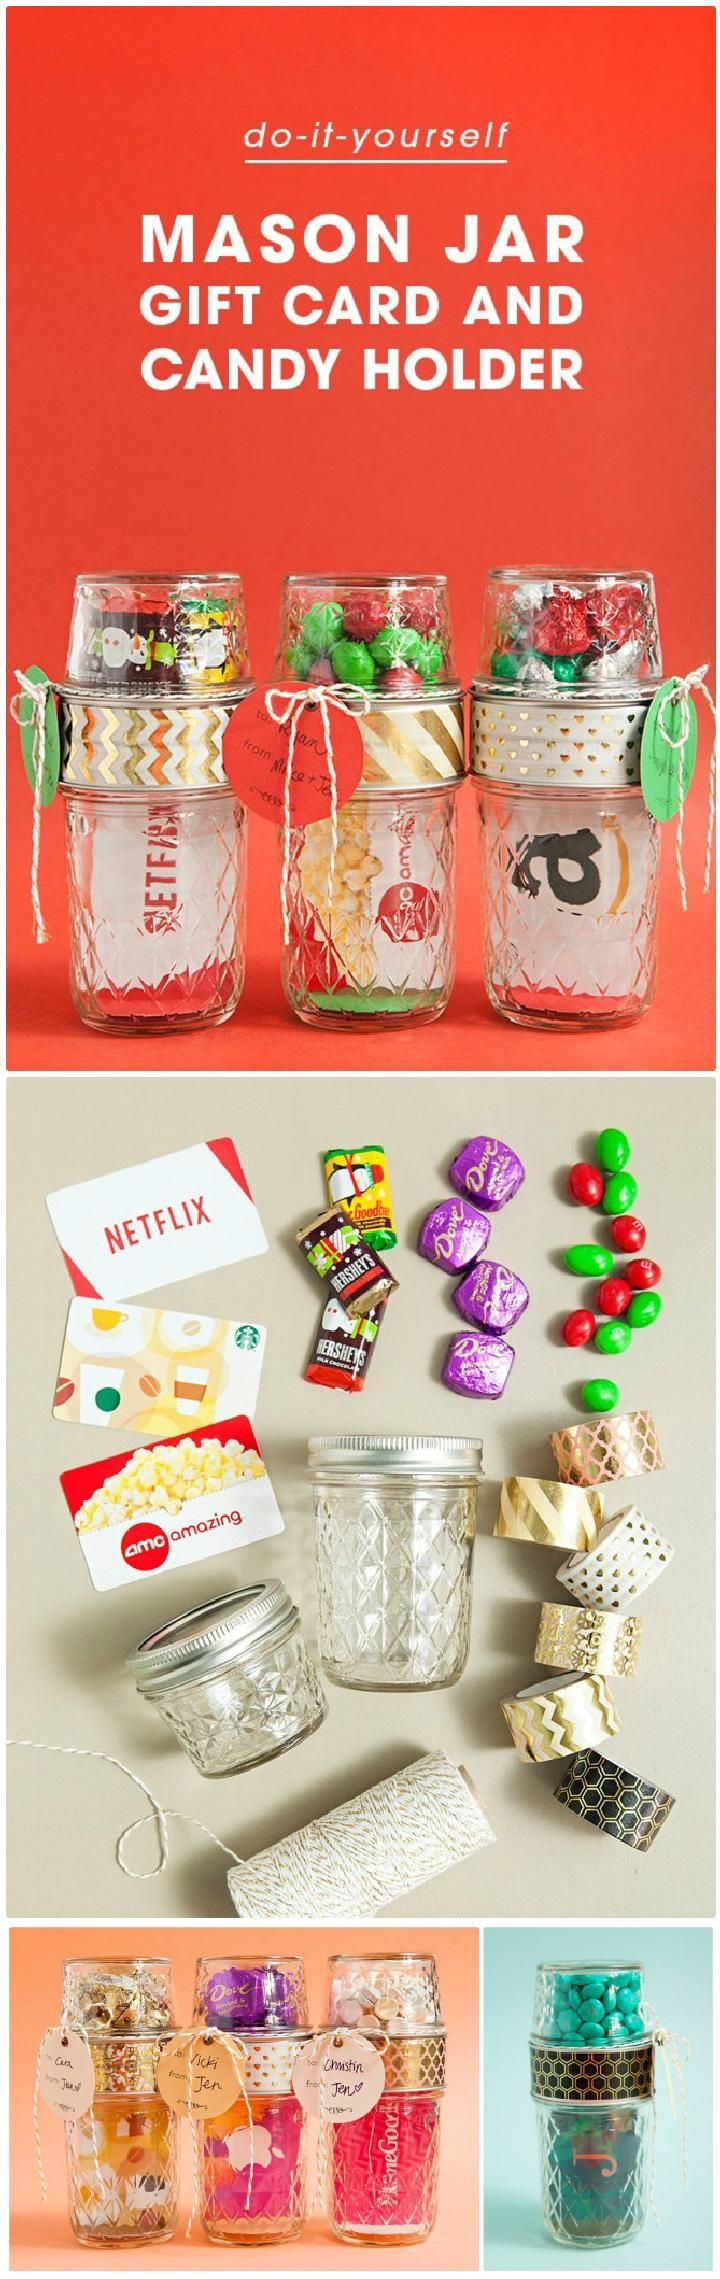 160 diy mason jar crafts and gift ideas page 3 of 17 mason jar 160 diy mason jar crafts and gift ideas page 3 of 17 diy solutioingenieria Images